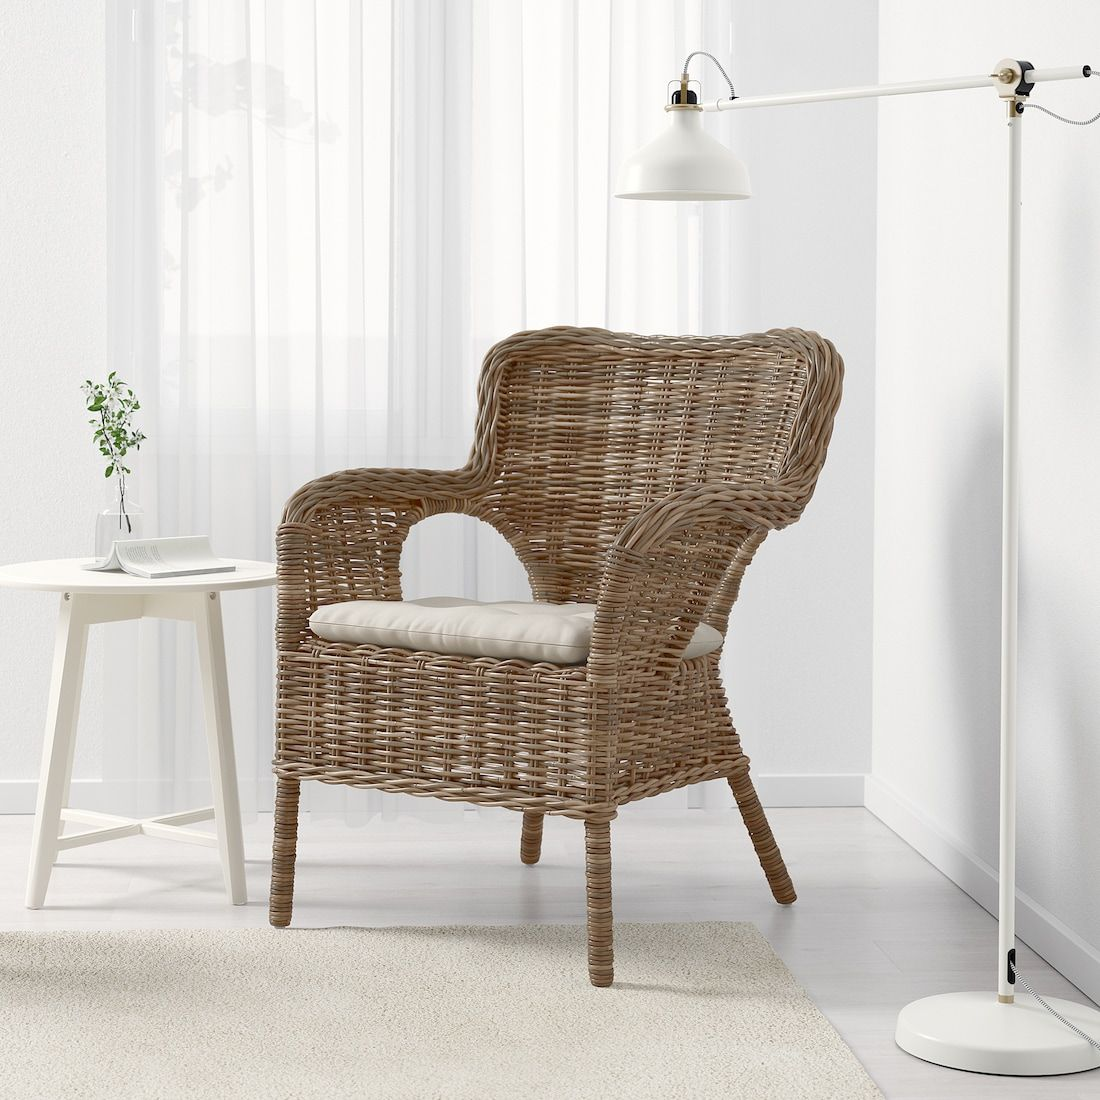 Byholma Armchair Gray Laila Natural Ikea In 2020 Patterned